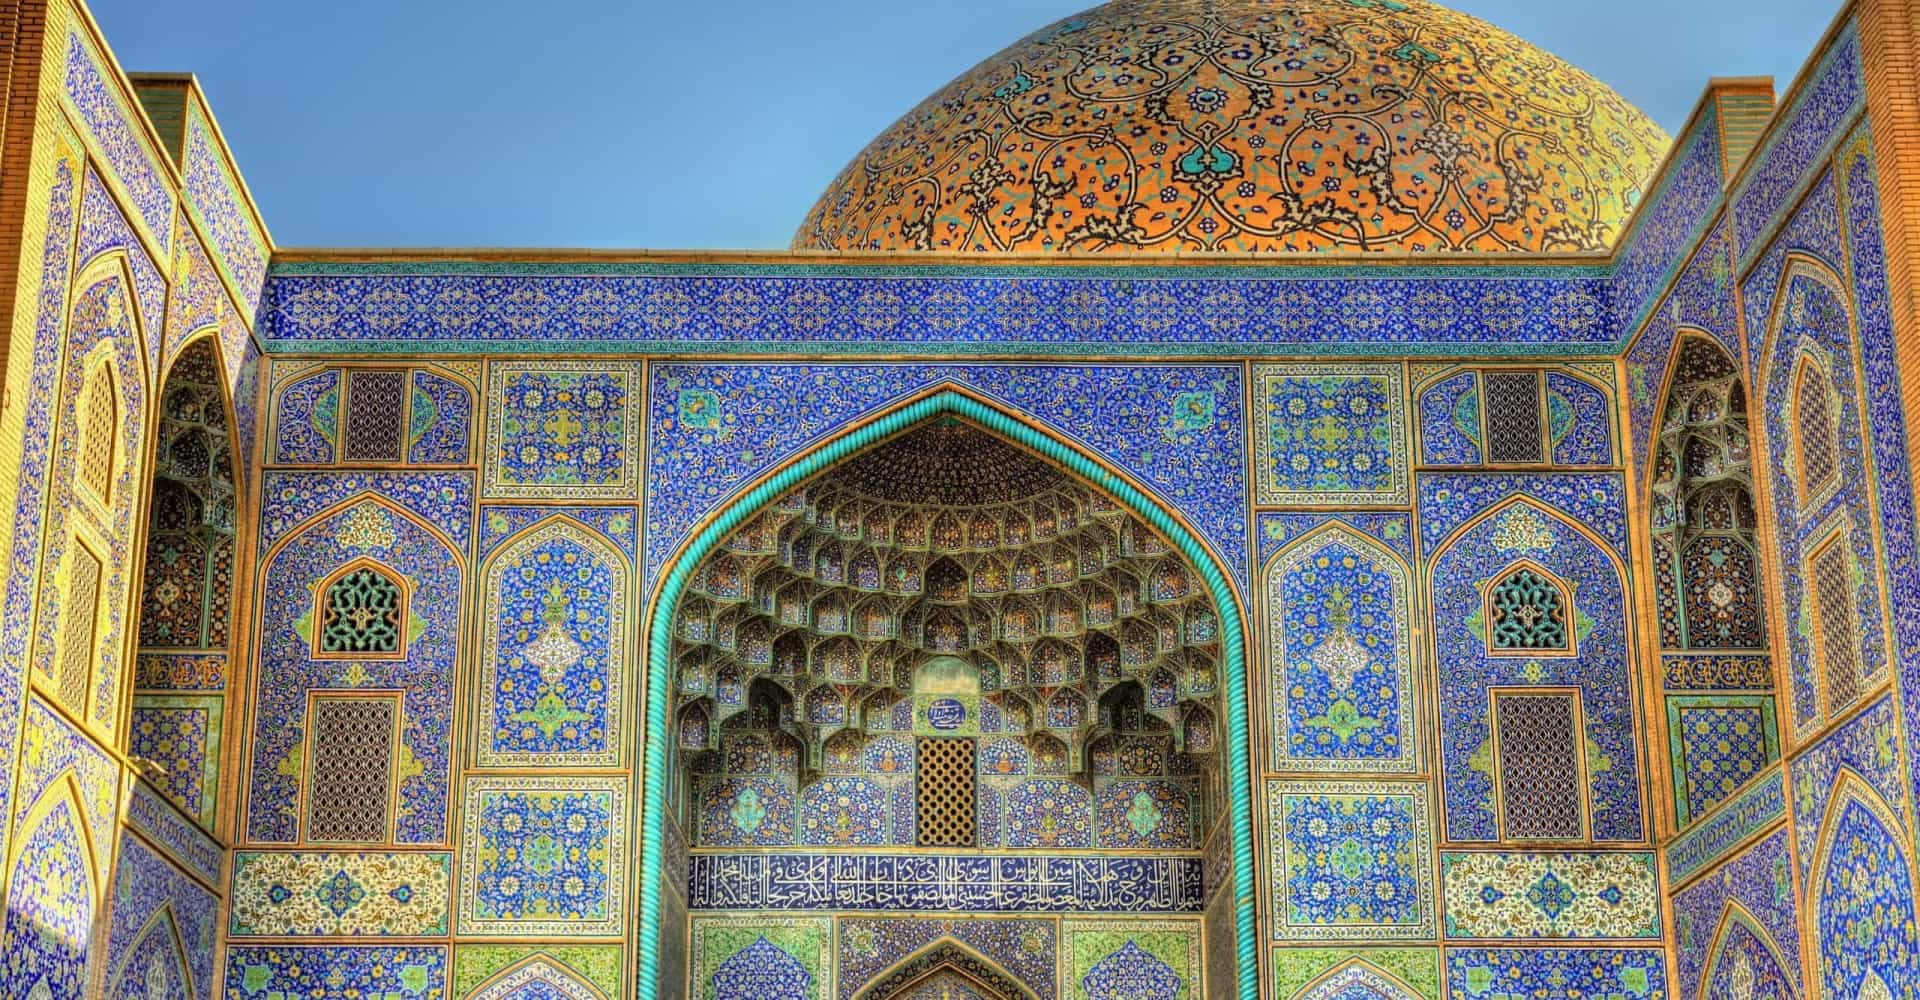 Exquisite Islamic architecture from around the world